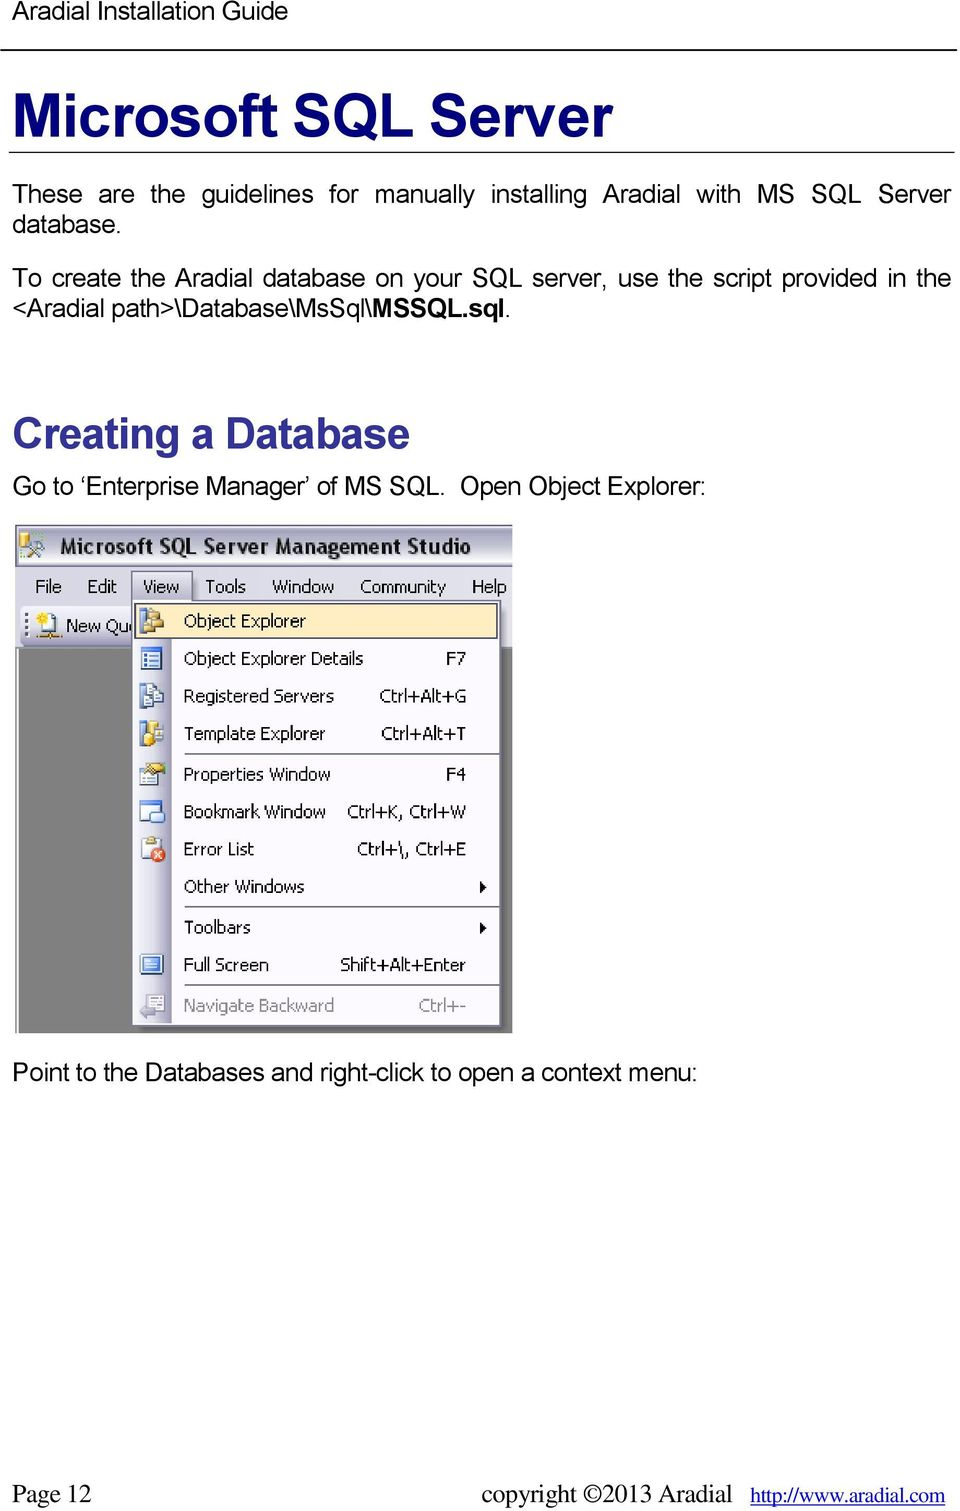 To create the Aradial database on your SQL server, use the script provided in the <Aradial